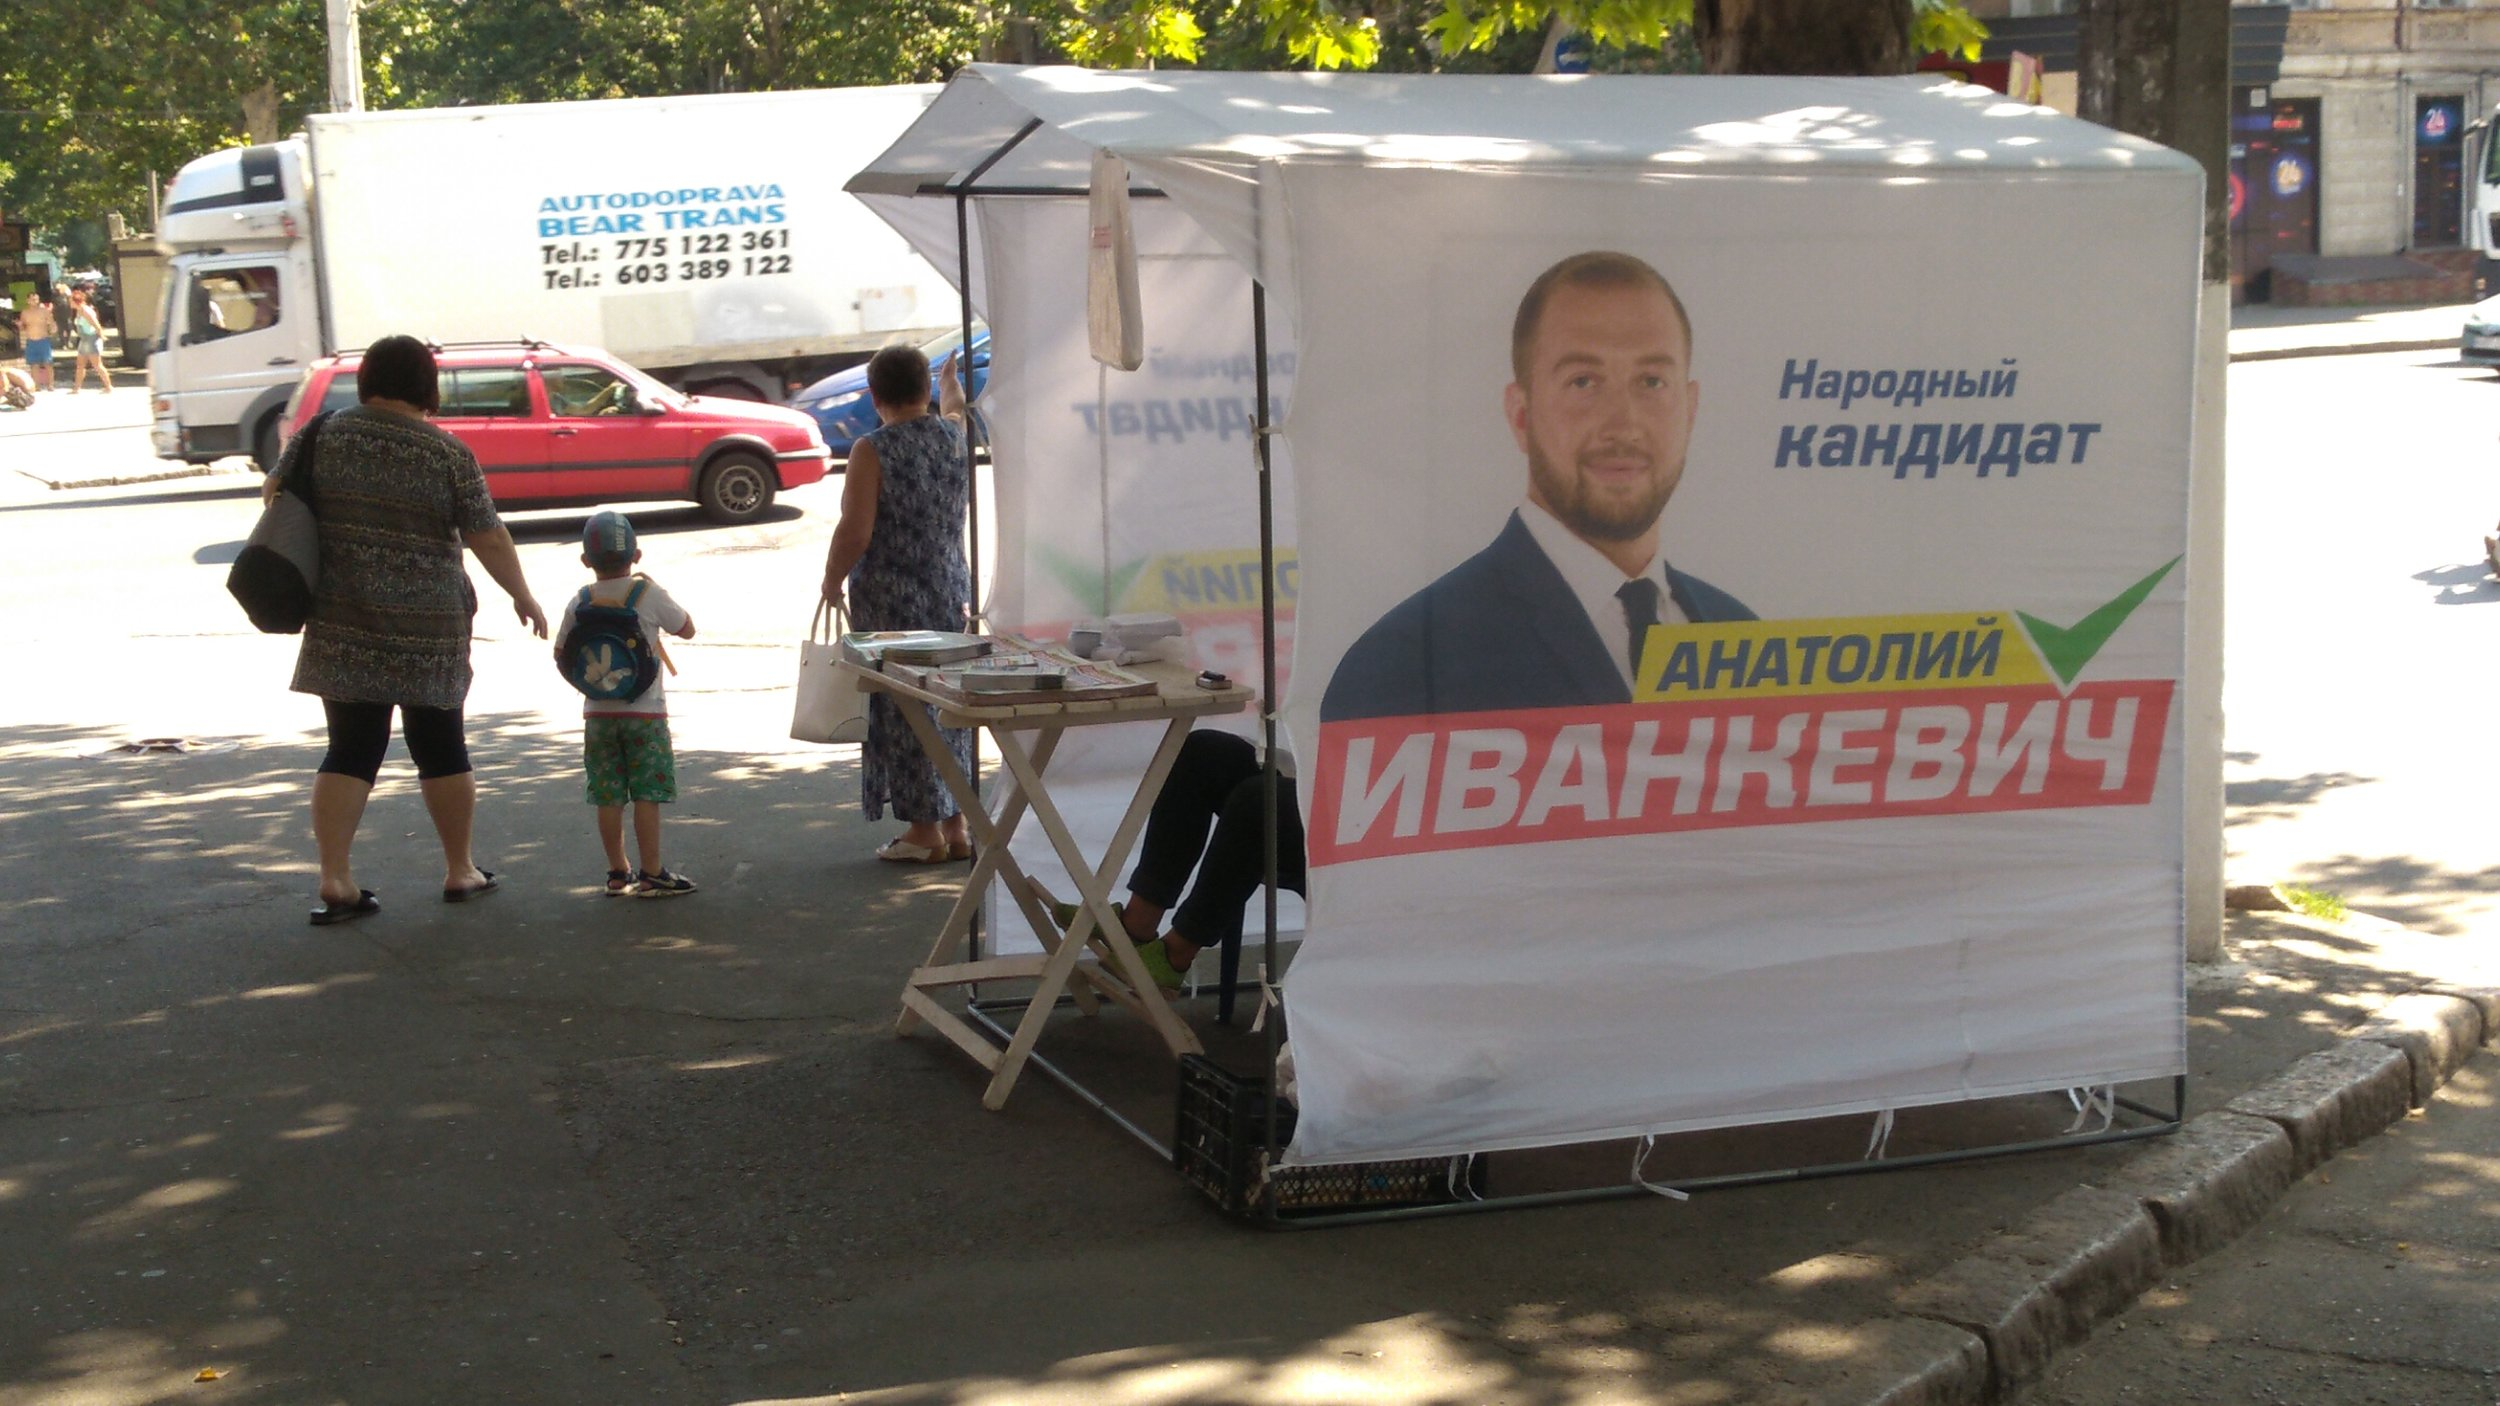 Booths have been set up by candidates at strategic corners to hand out campaign literature but there are very few takers